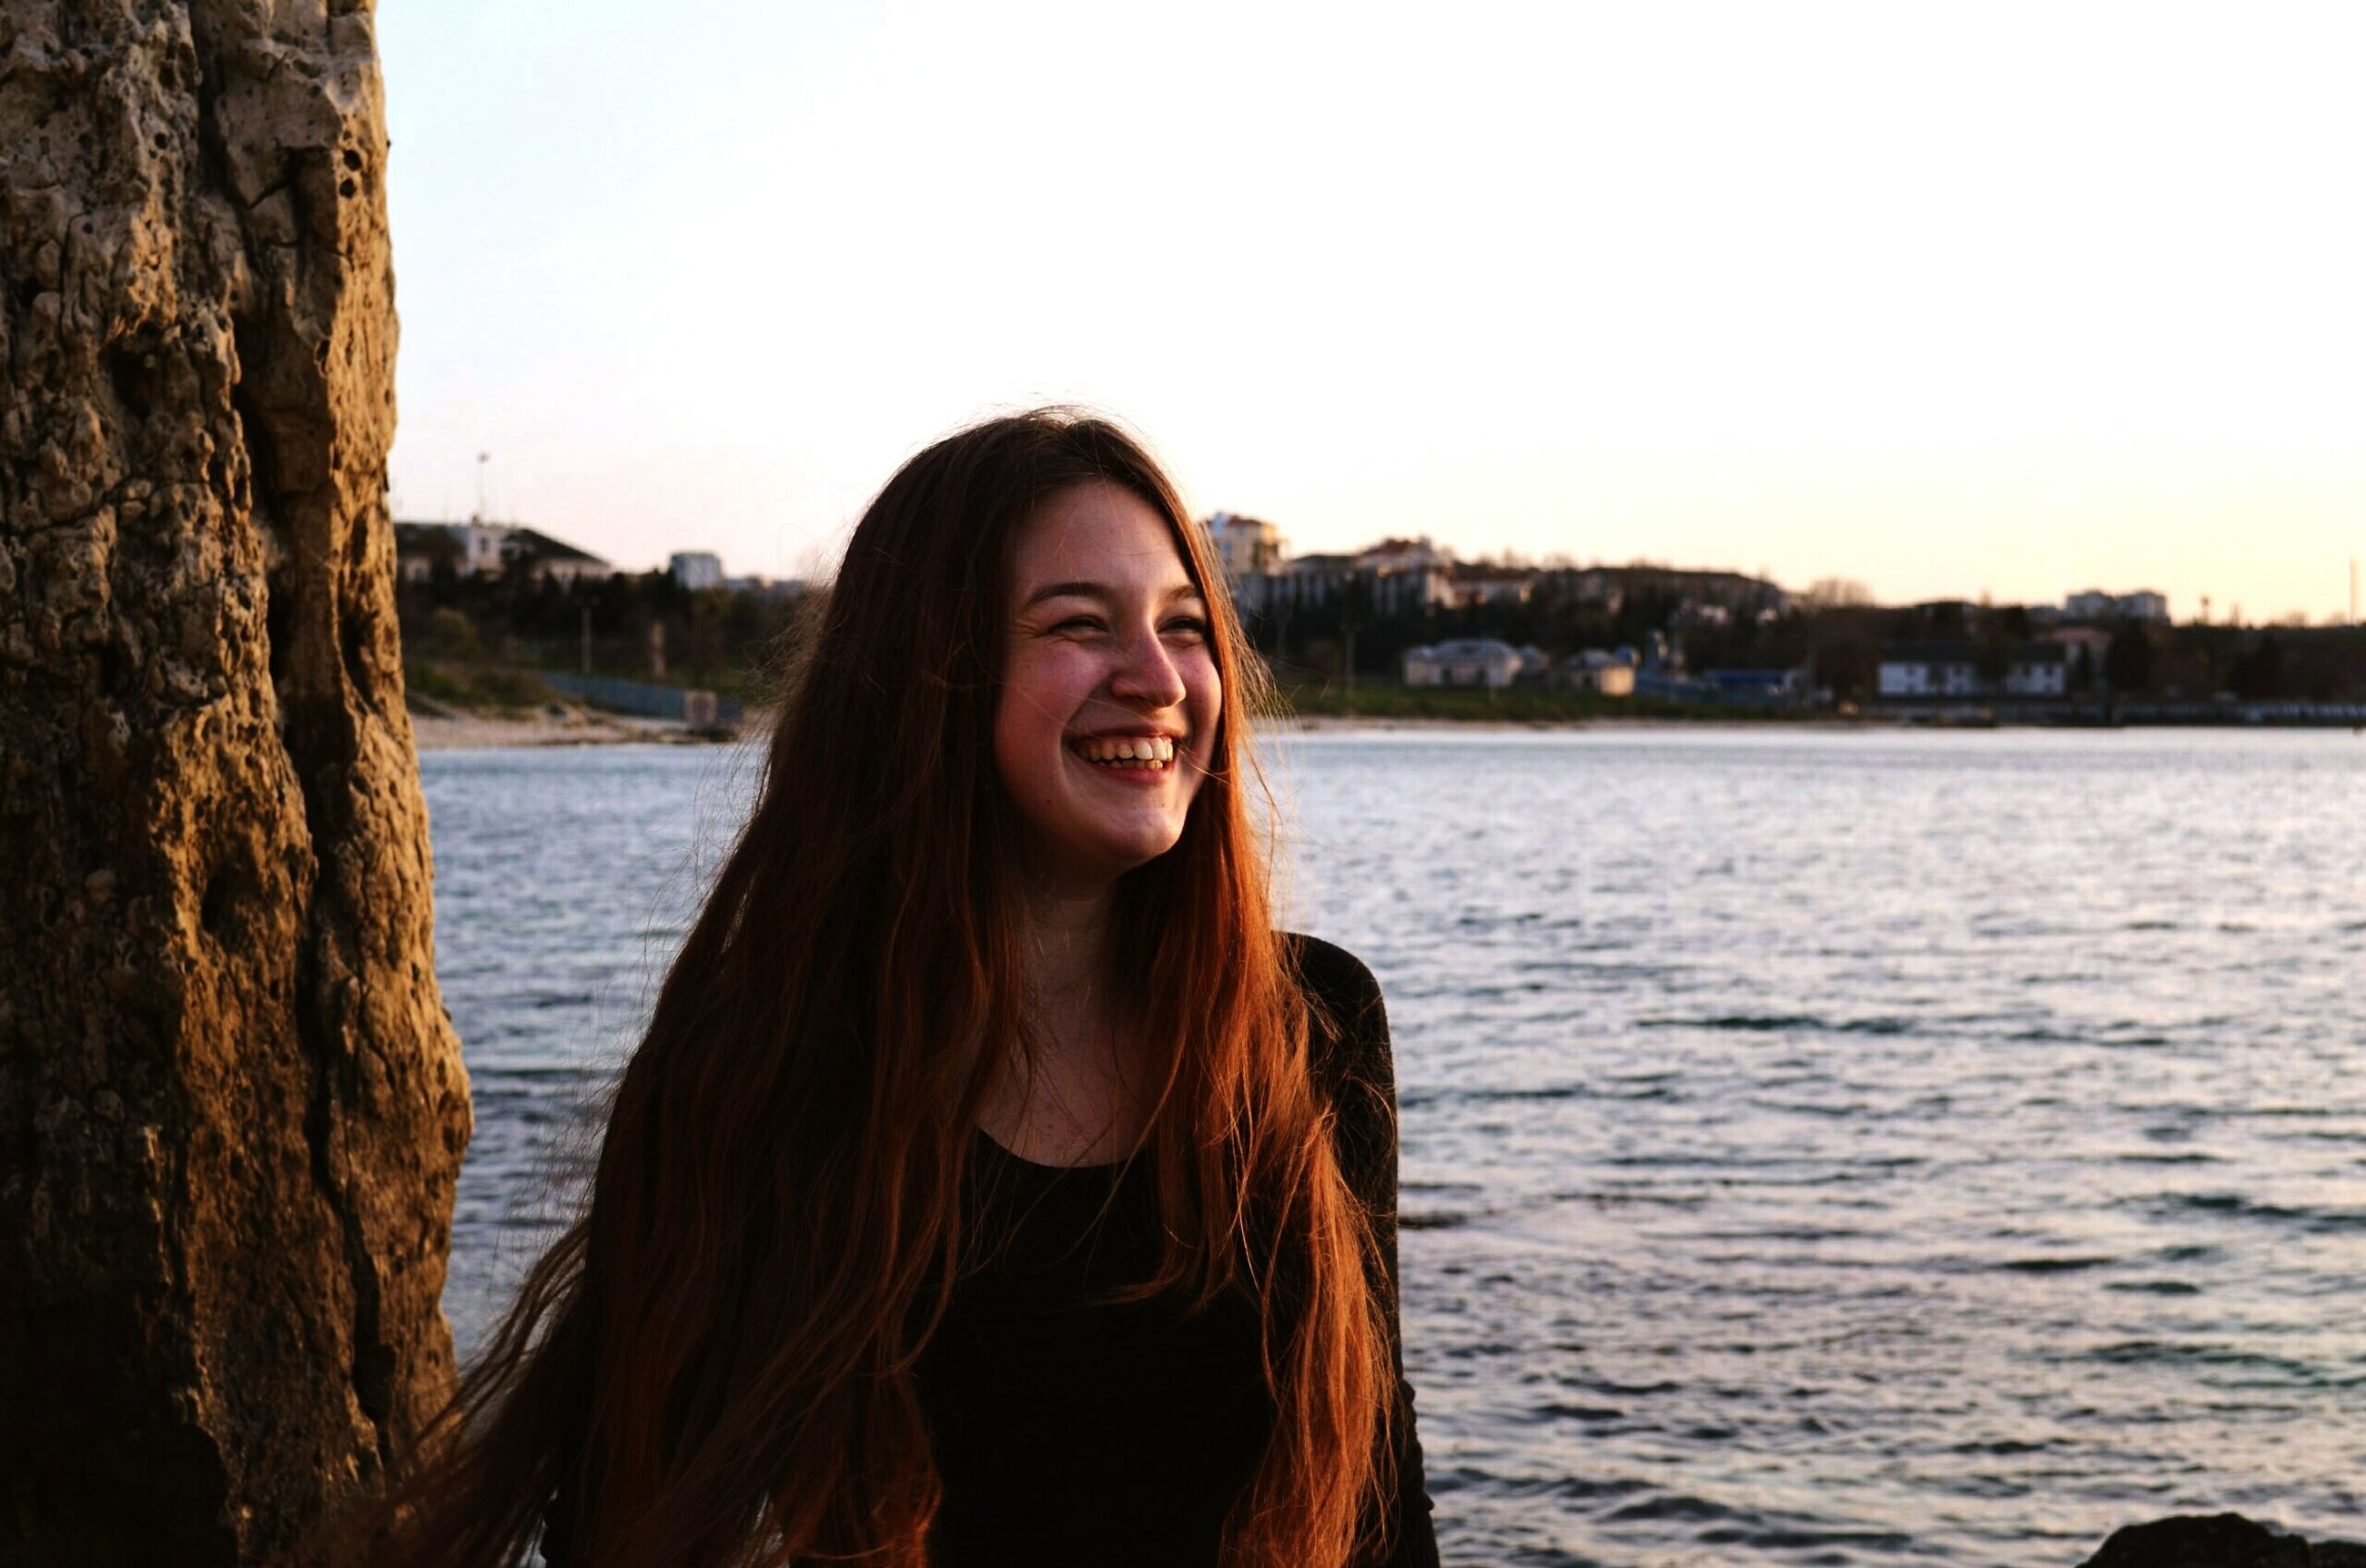 young adult, looking at camera, portrait, young women, long hair, person, water, lifestyles, front view, smiling, standing, leisure activity, clear sky, waist up, casual clothing, focus on foreground, sea